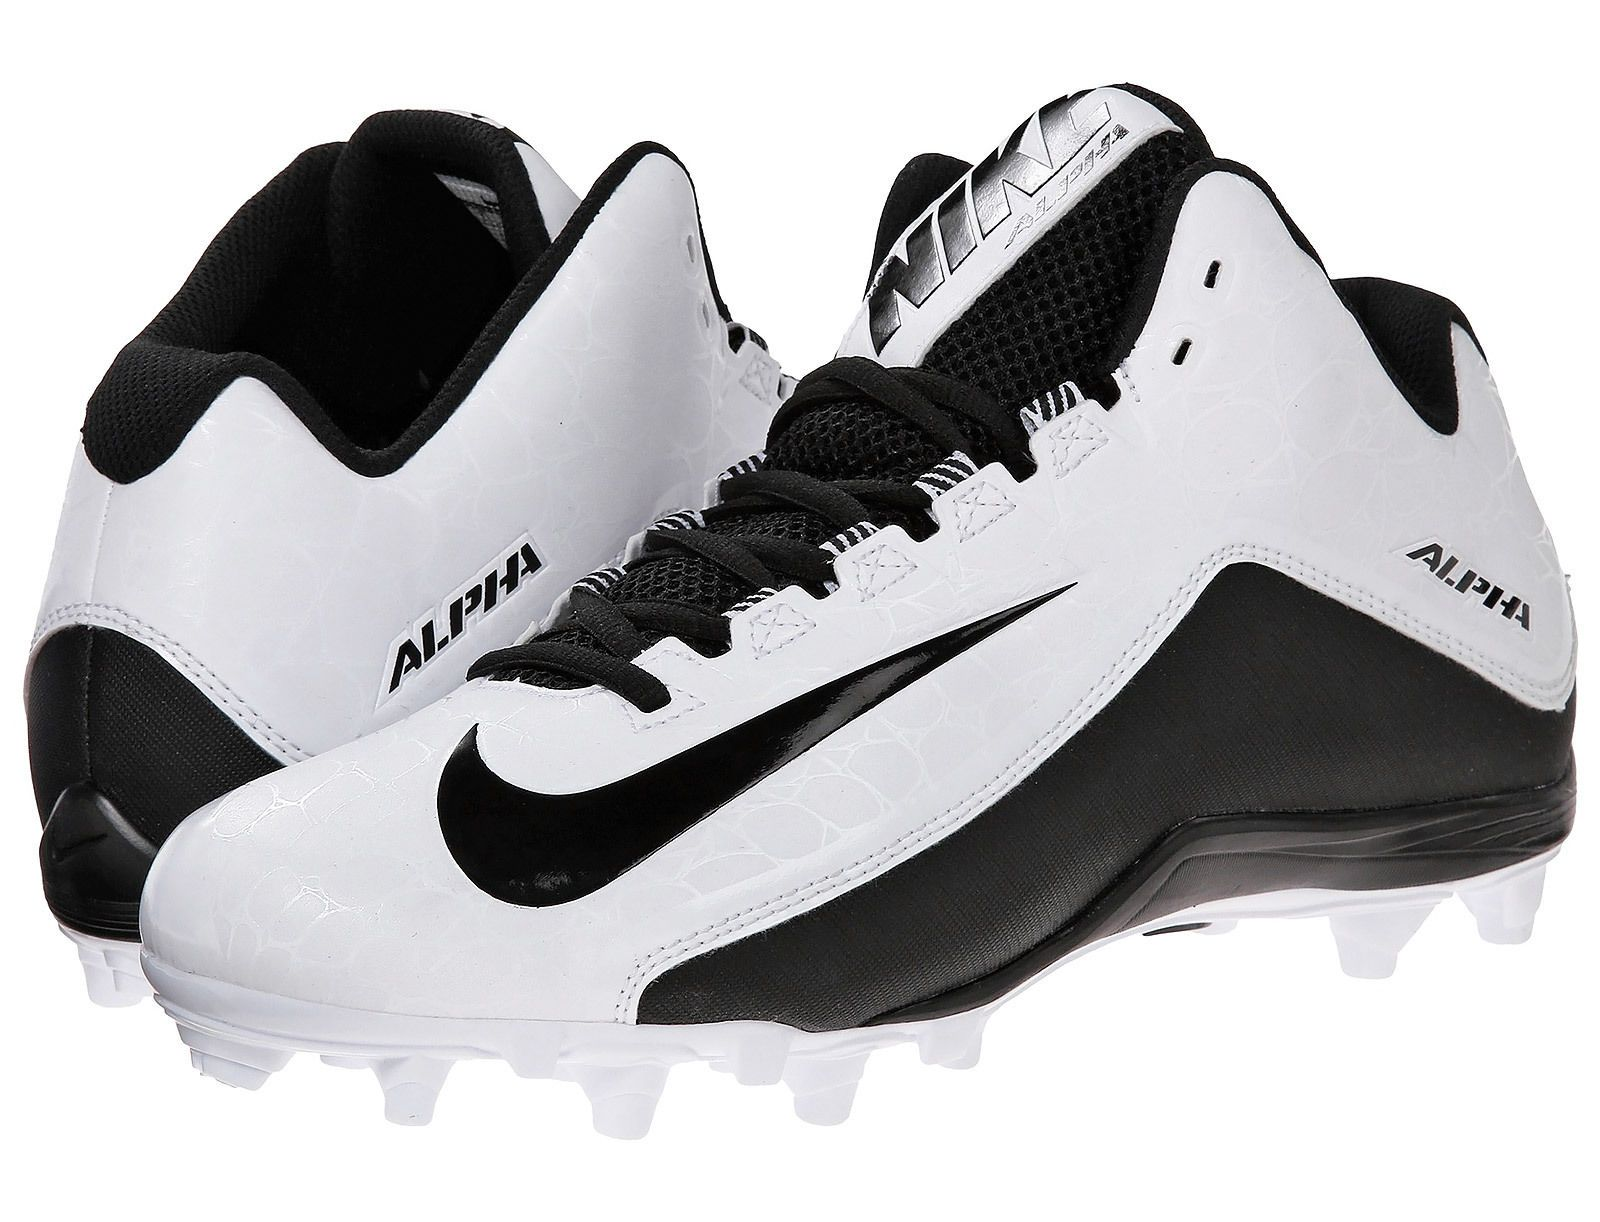 New Nike Alpha Strike 2 3/4 TD Mid Mens Football Cleats : White